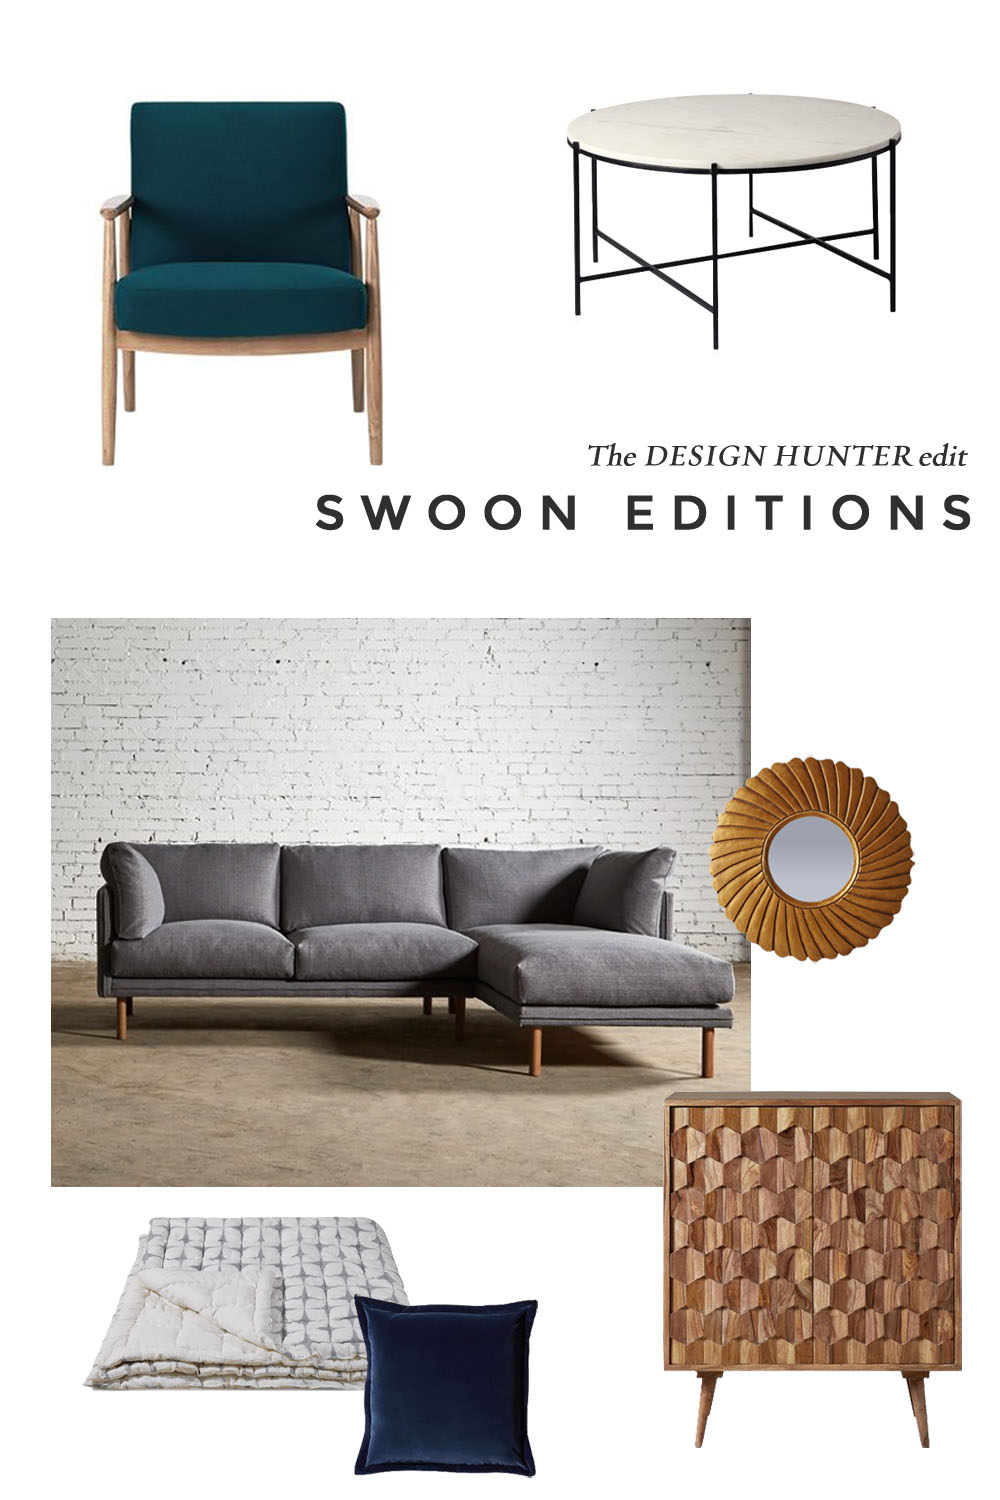 Swoon Editions | The Design Hunter edit